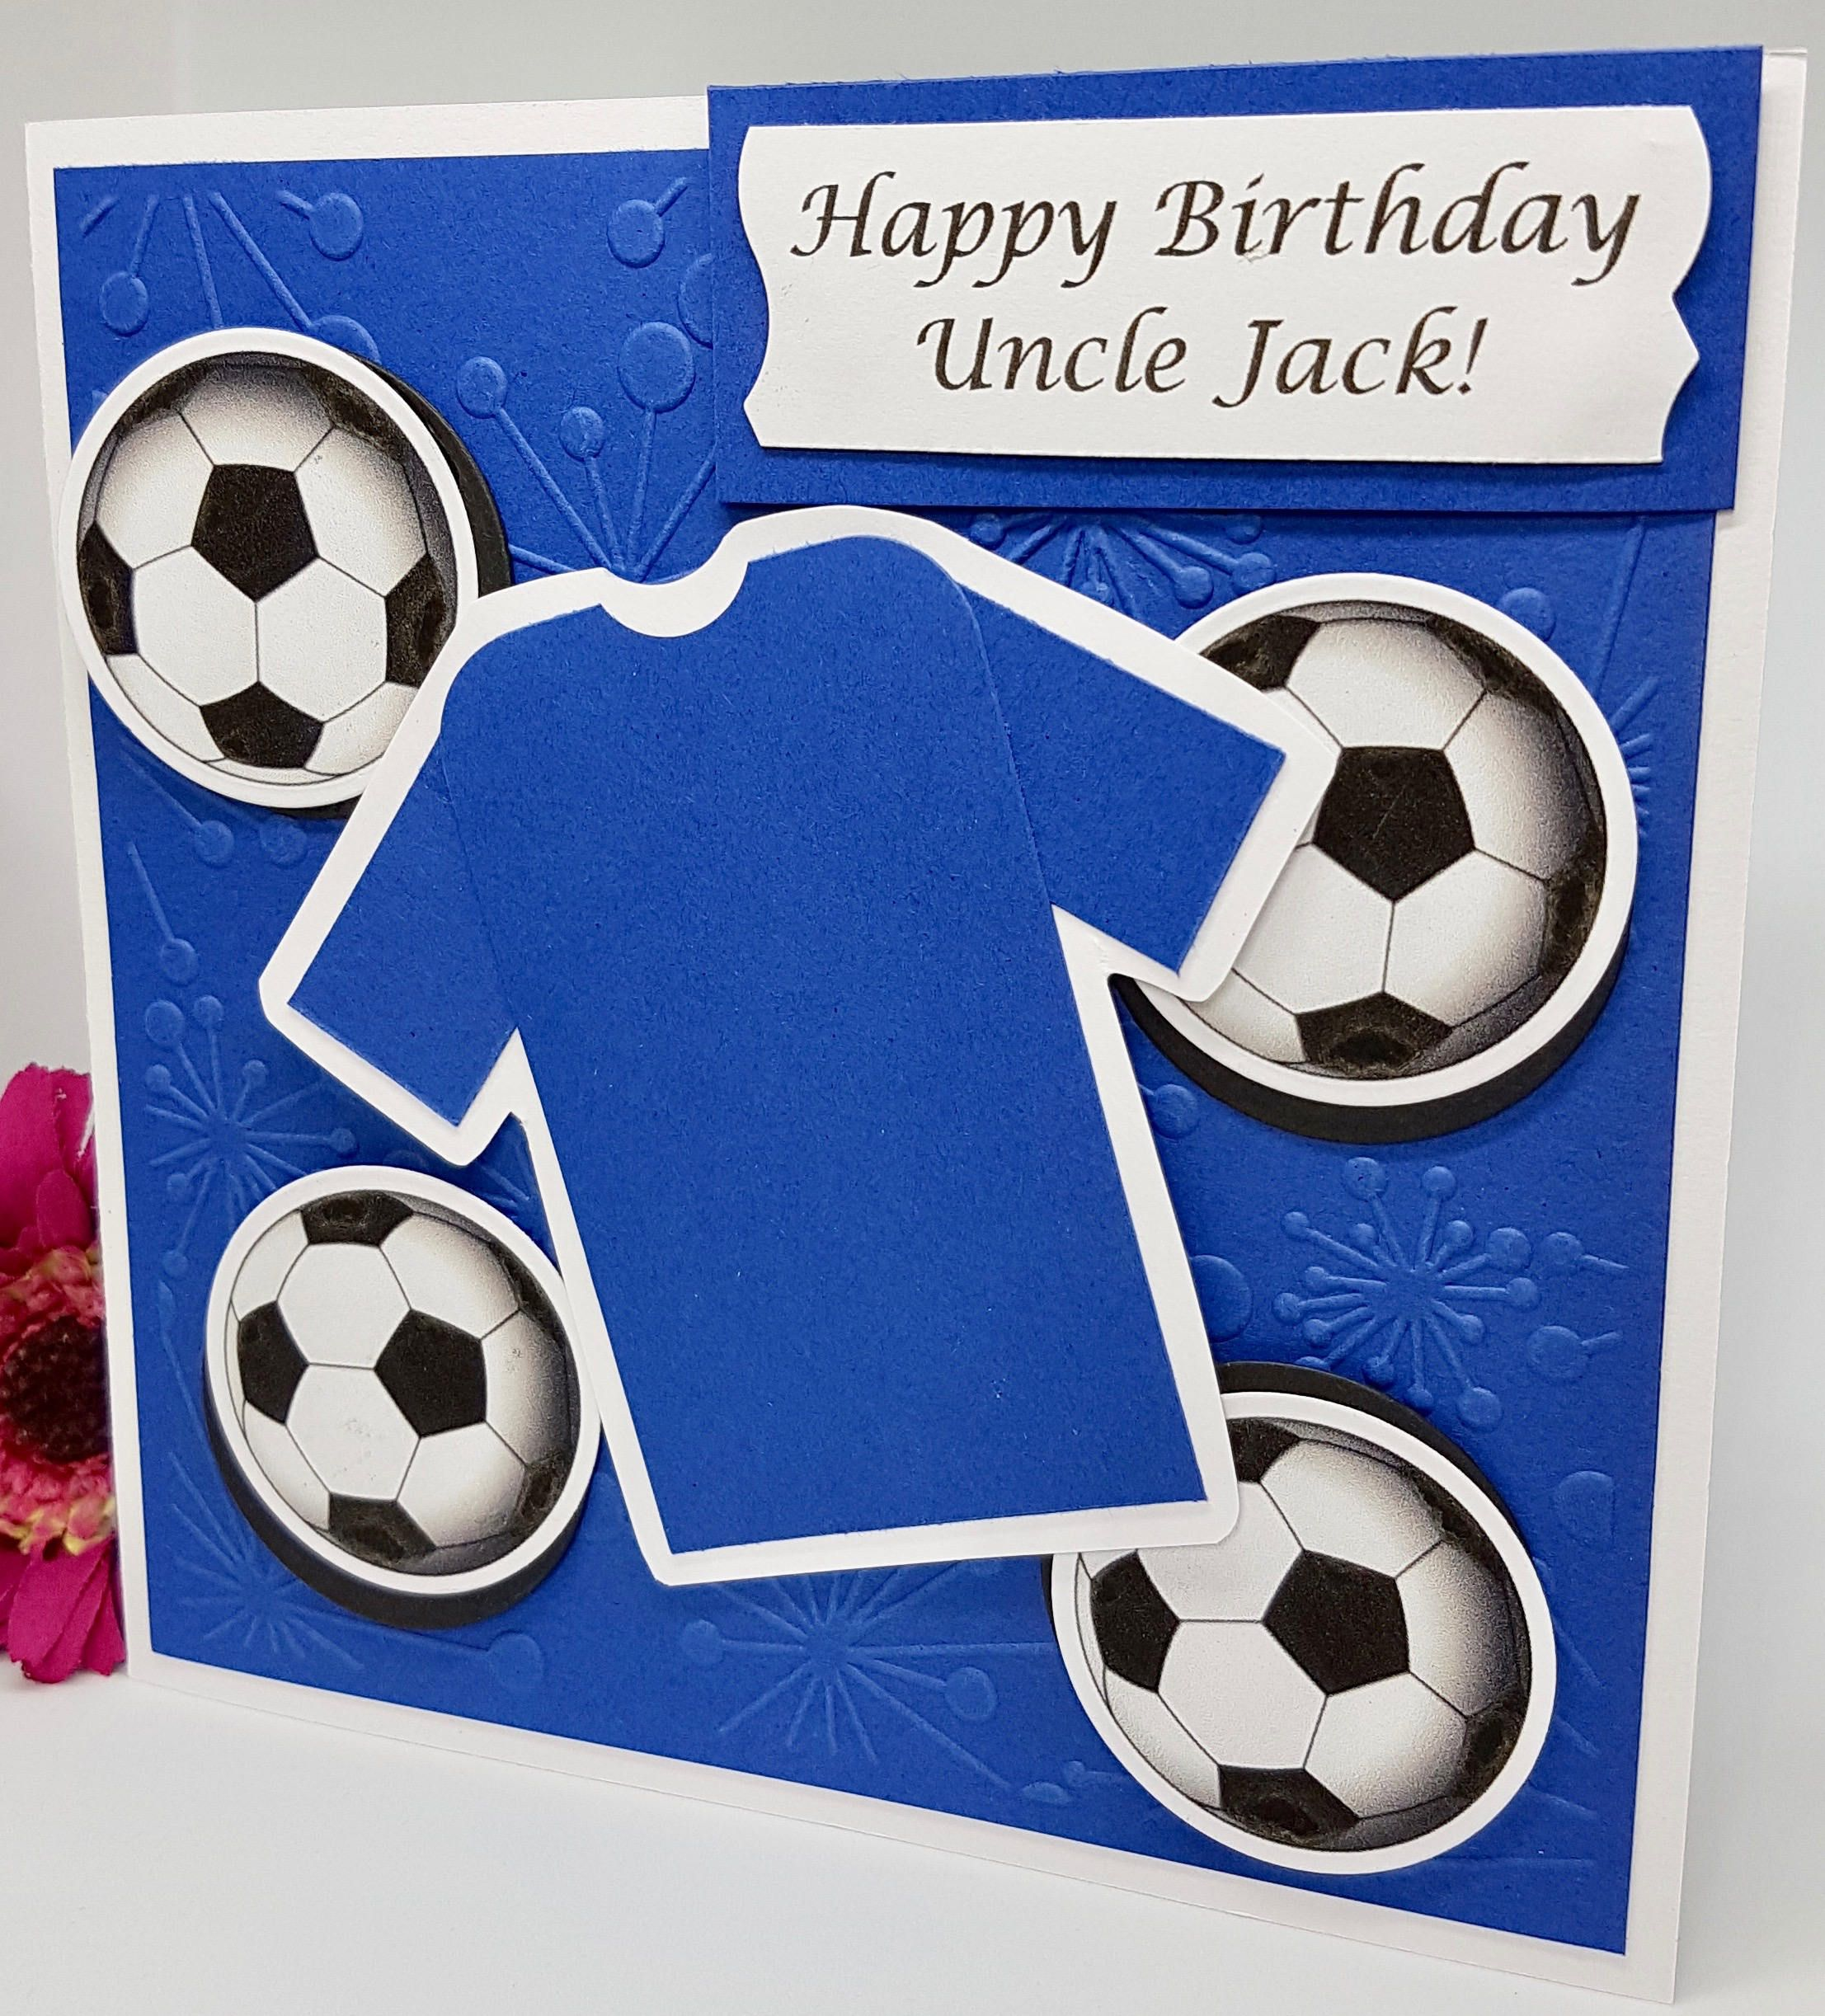 Personalised Sports Birthday Card Football Golf Rugby Handmade Kids Adults Dad Brother Uncle Son Grandad Bd Birthday Cards Sports Birthday Happy Birthday Uncle